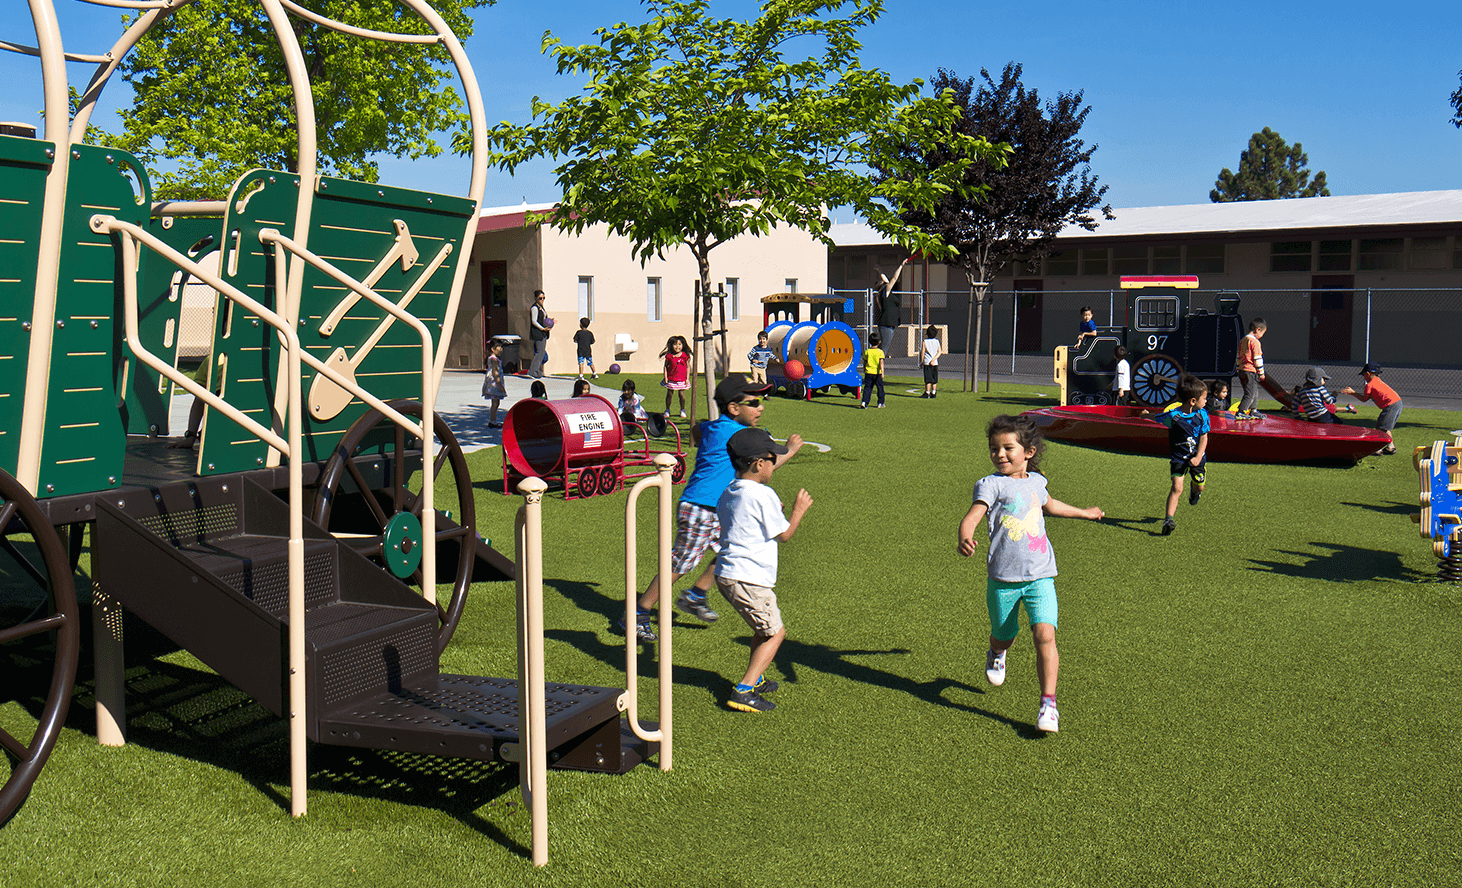 Elementary School Playground | Challenger School - Almaden | Private School In San Jose, California